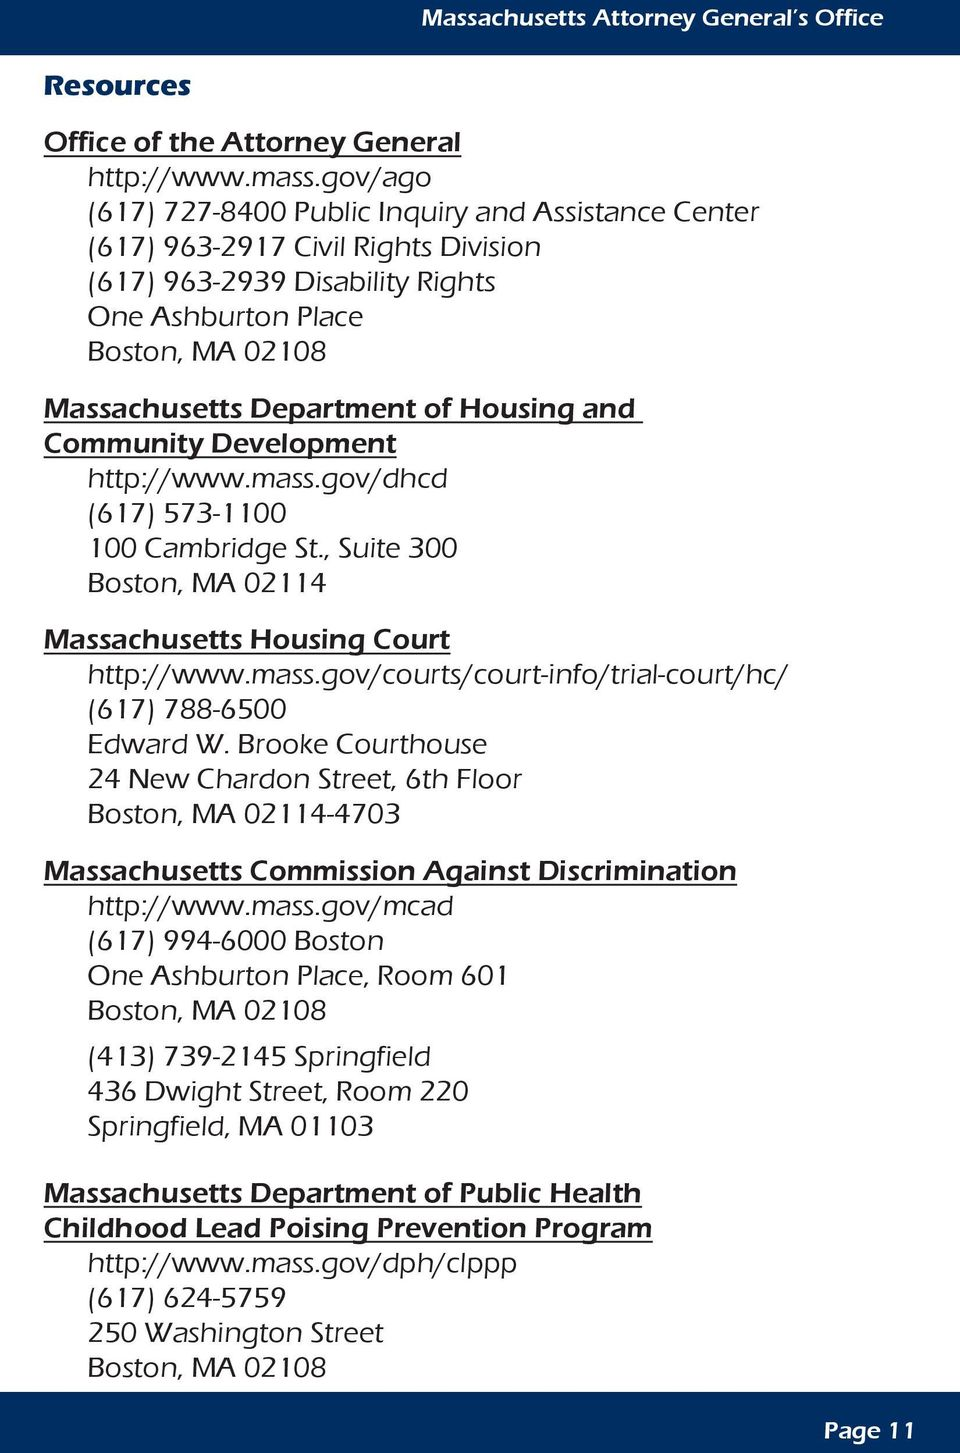 Housing and Community Development http://www.mass.gov/dhcd (617) 573-1100 100 Cambridge St., Suite 300 Boston, MA 02114 Massachusetts Housing Court http://www.mass.gov/courts/court-info/trial-court/hc/ (617) 788-6500 Edward W.